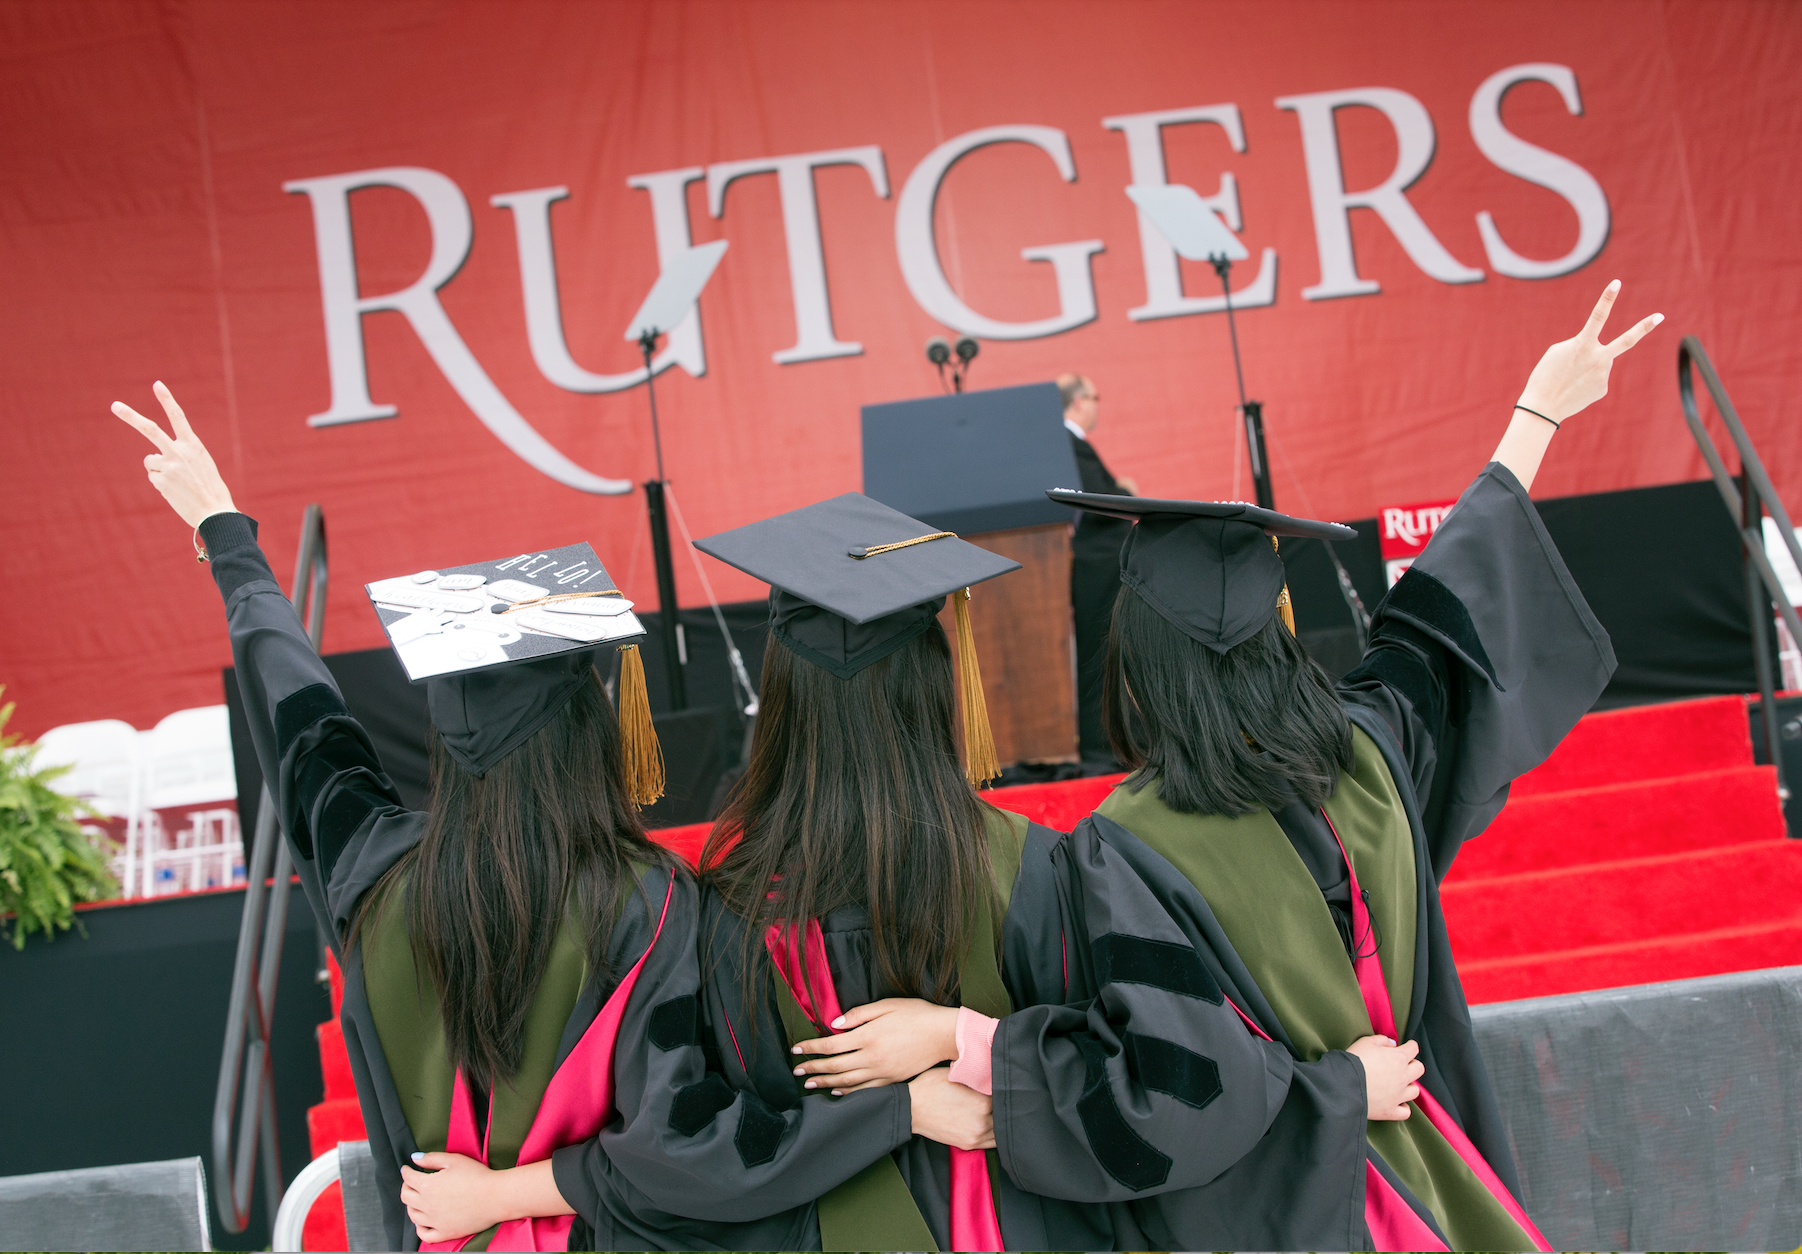 Rutgers_Graduation_approved_photo.png